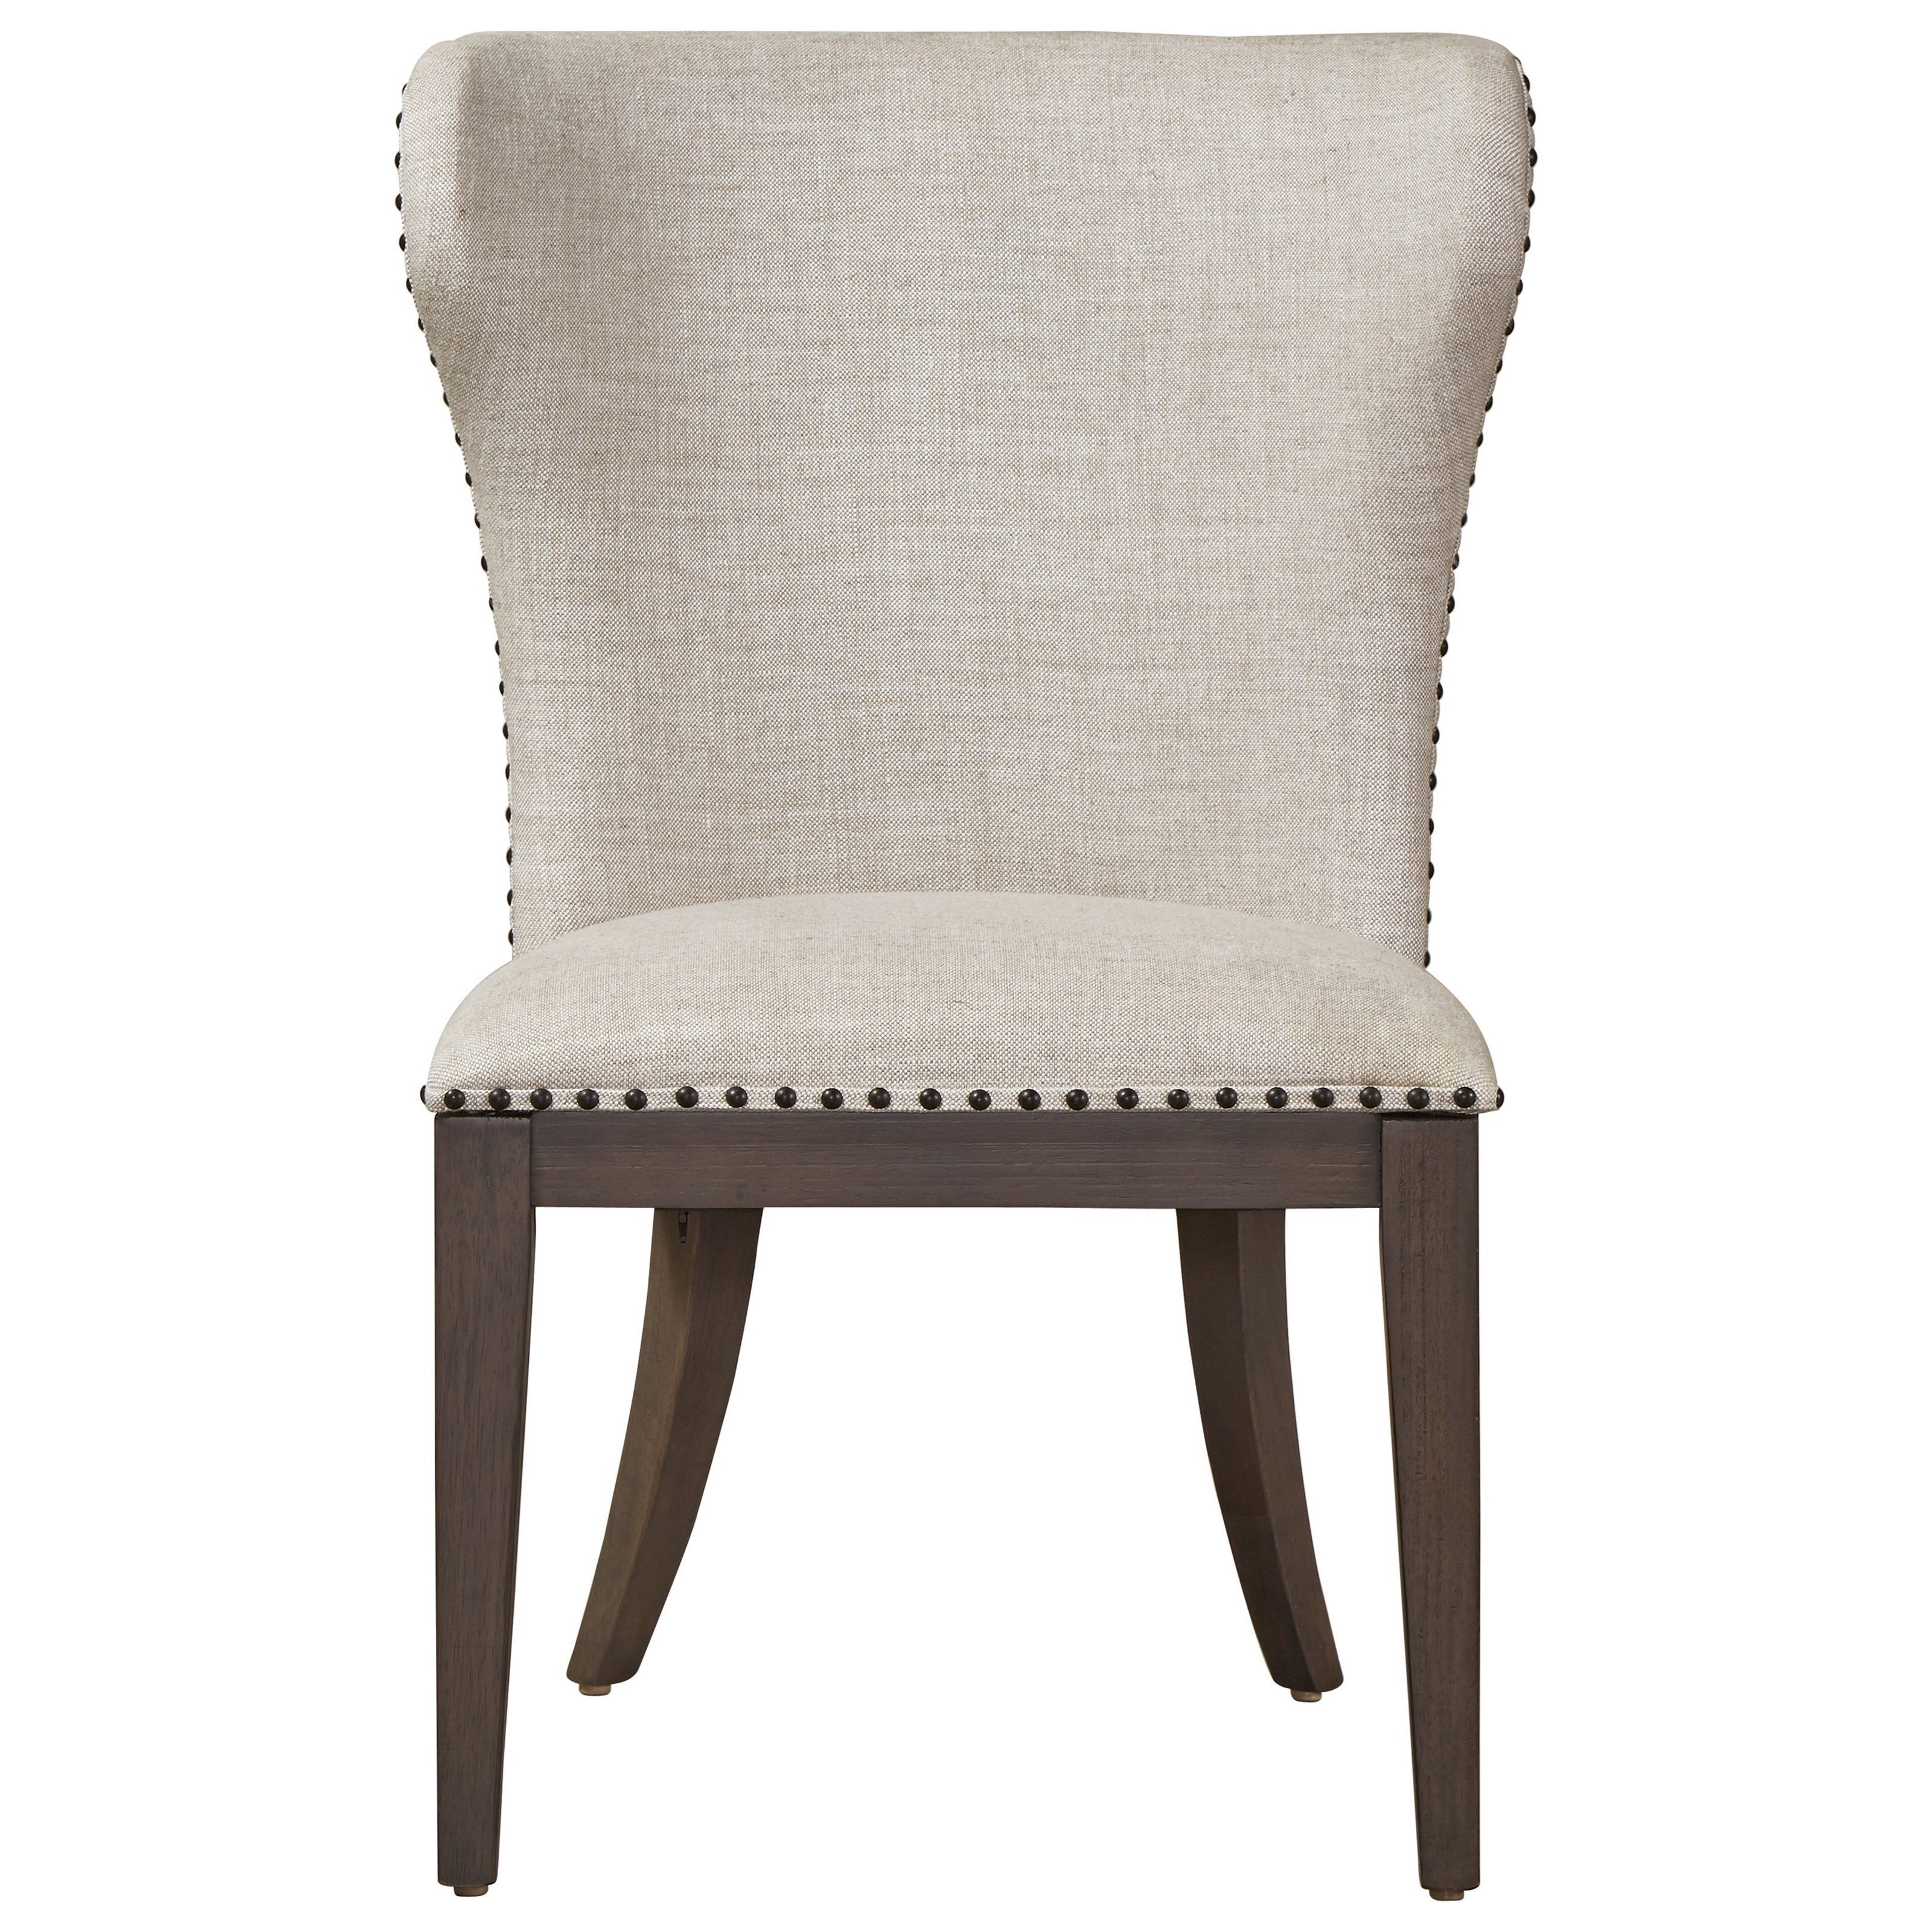 Universal Curated Bladwin Chair - Item Number: 552738-RTA